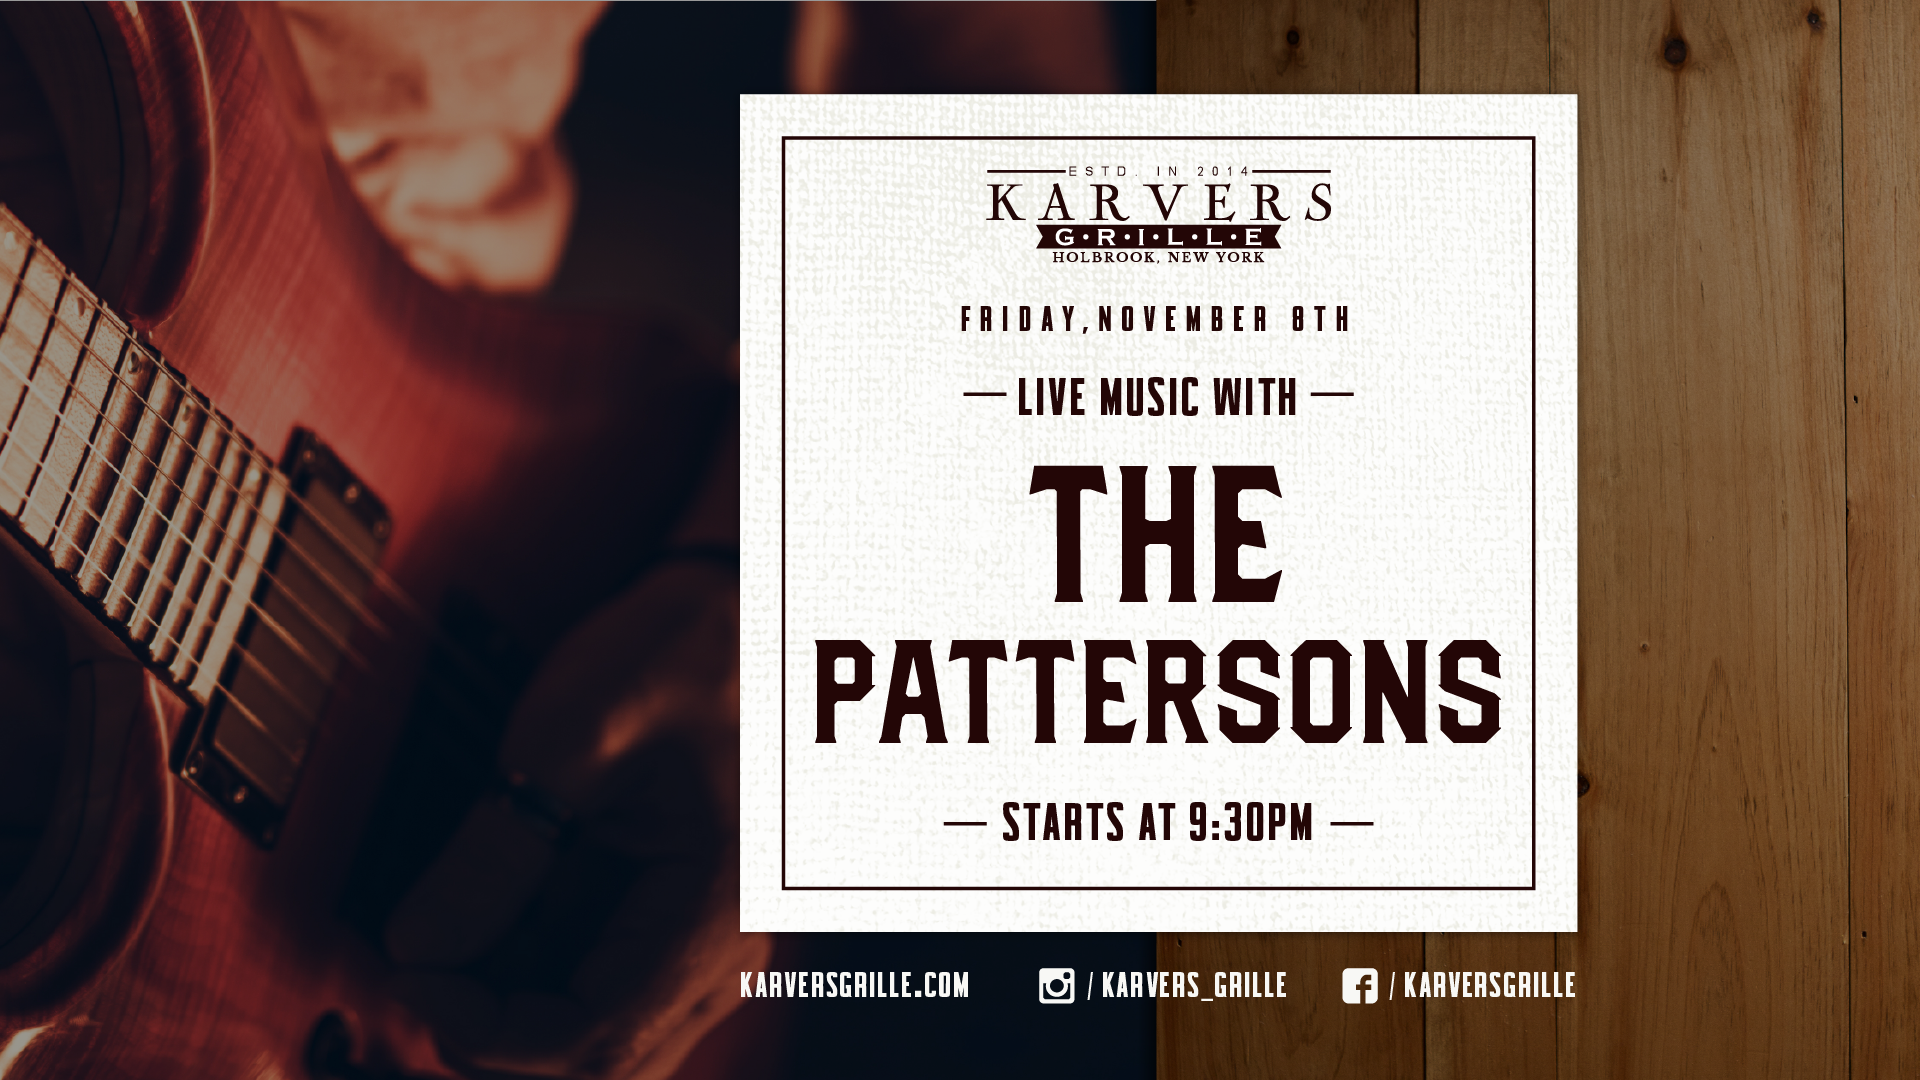 The Pattersons